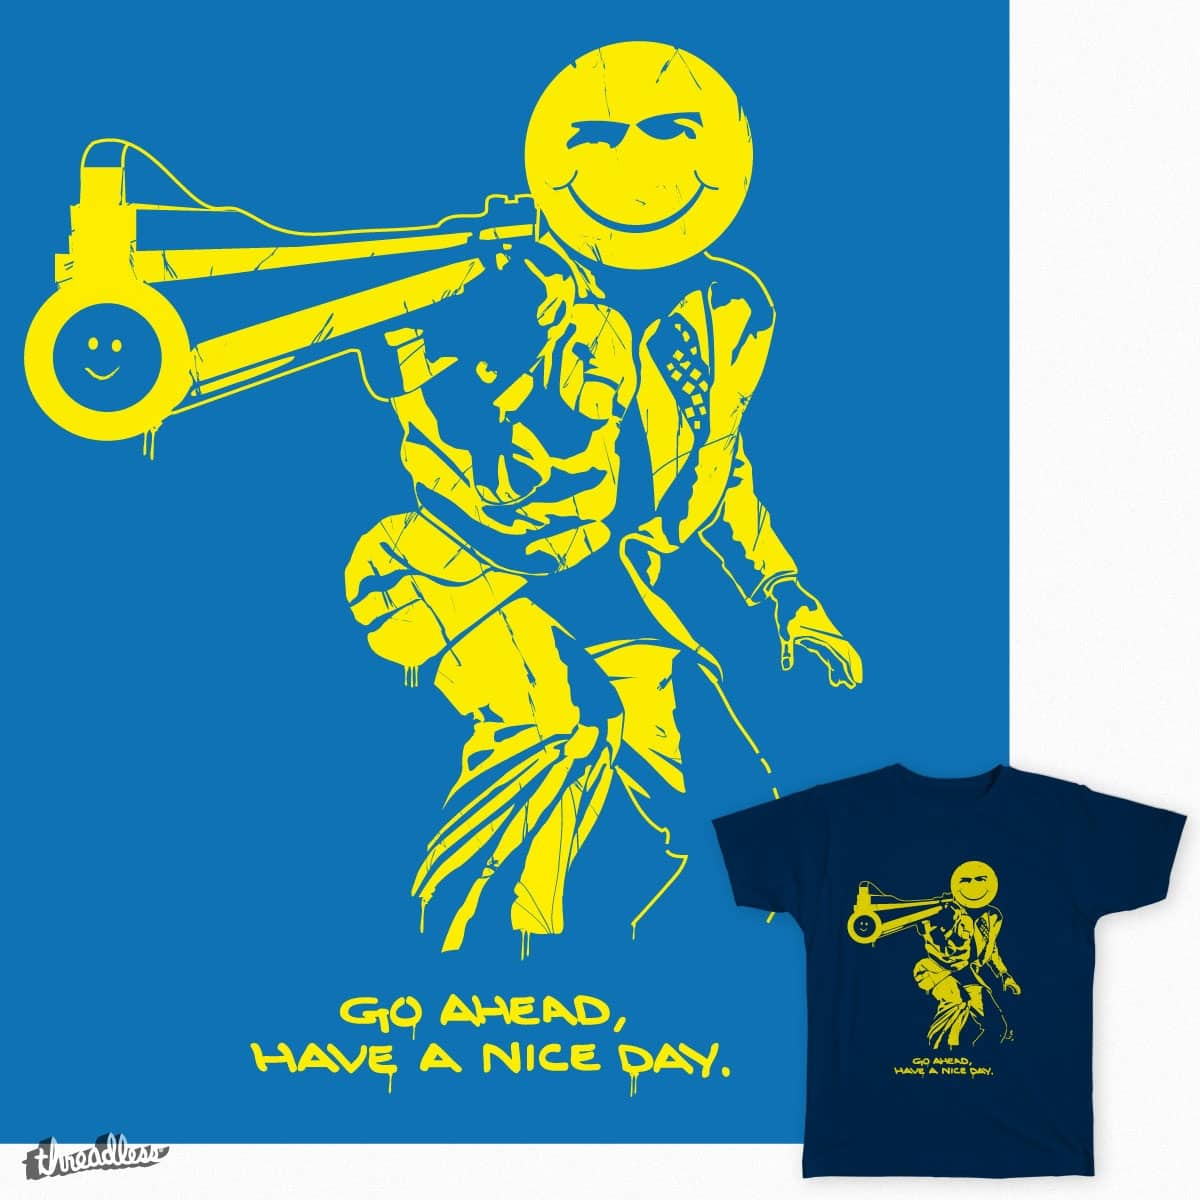 Have a nice day by jonmcgrinder on Threadless